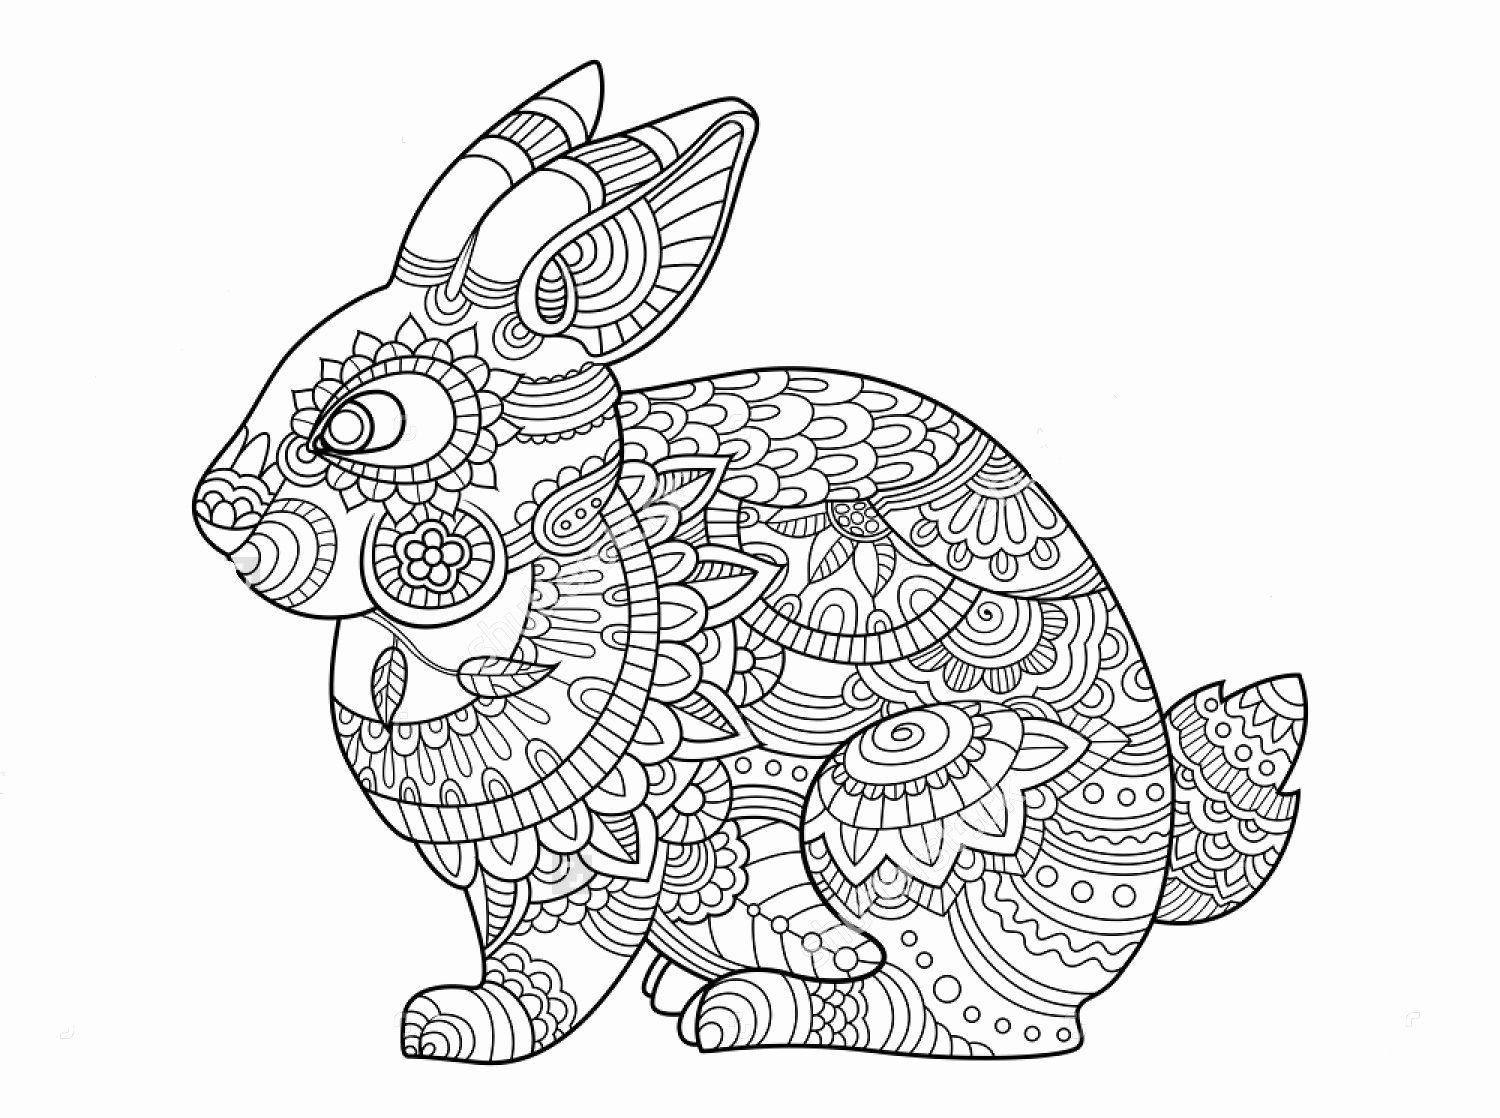 Animal Coloring Pages Rabbit Coloring Pages Gallery Bunny Coloring Pages Mandala Coloring Pages Animal Coloring Pages